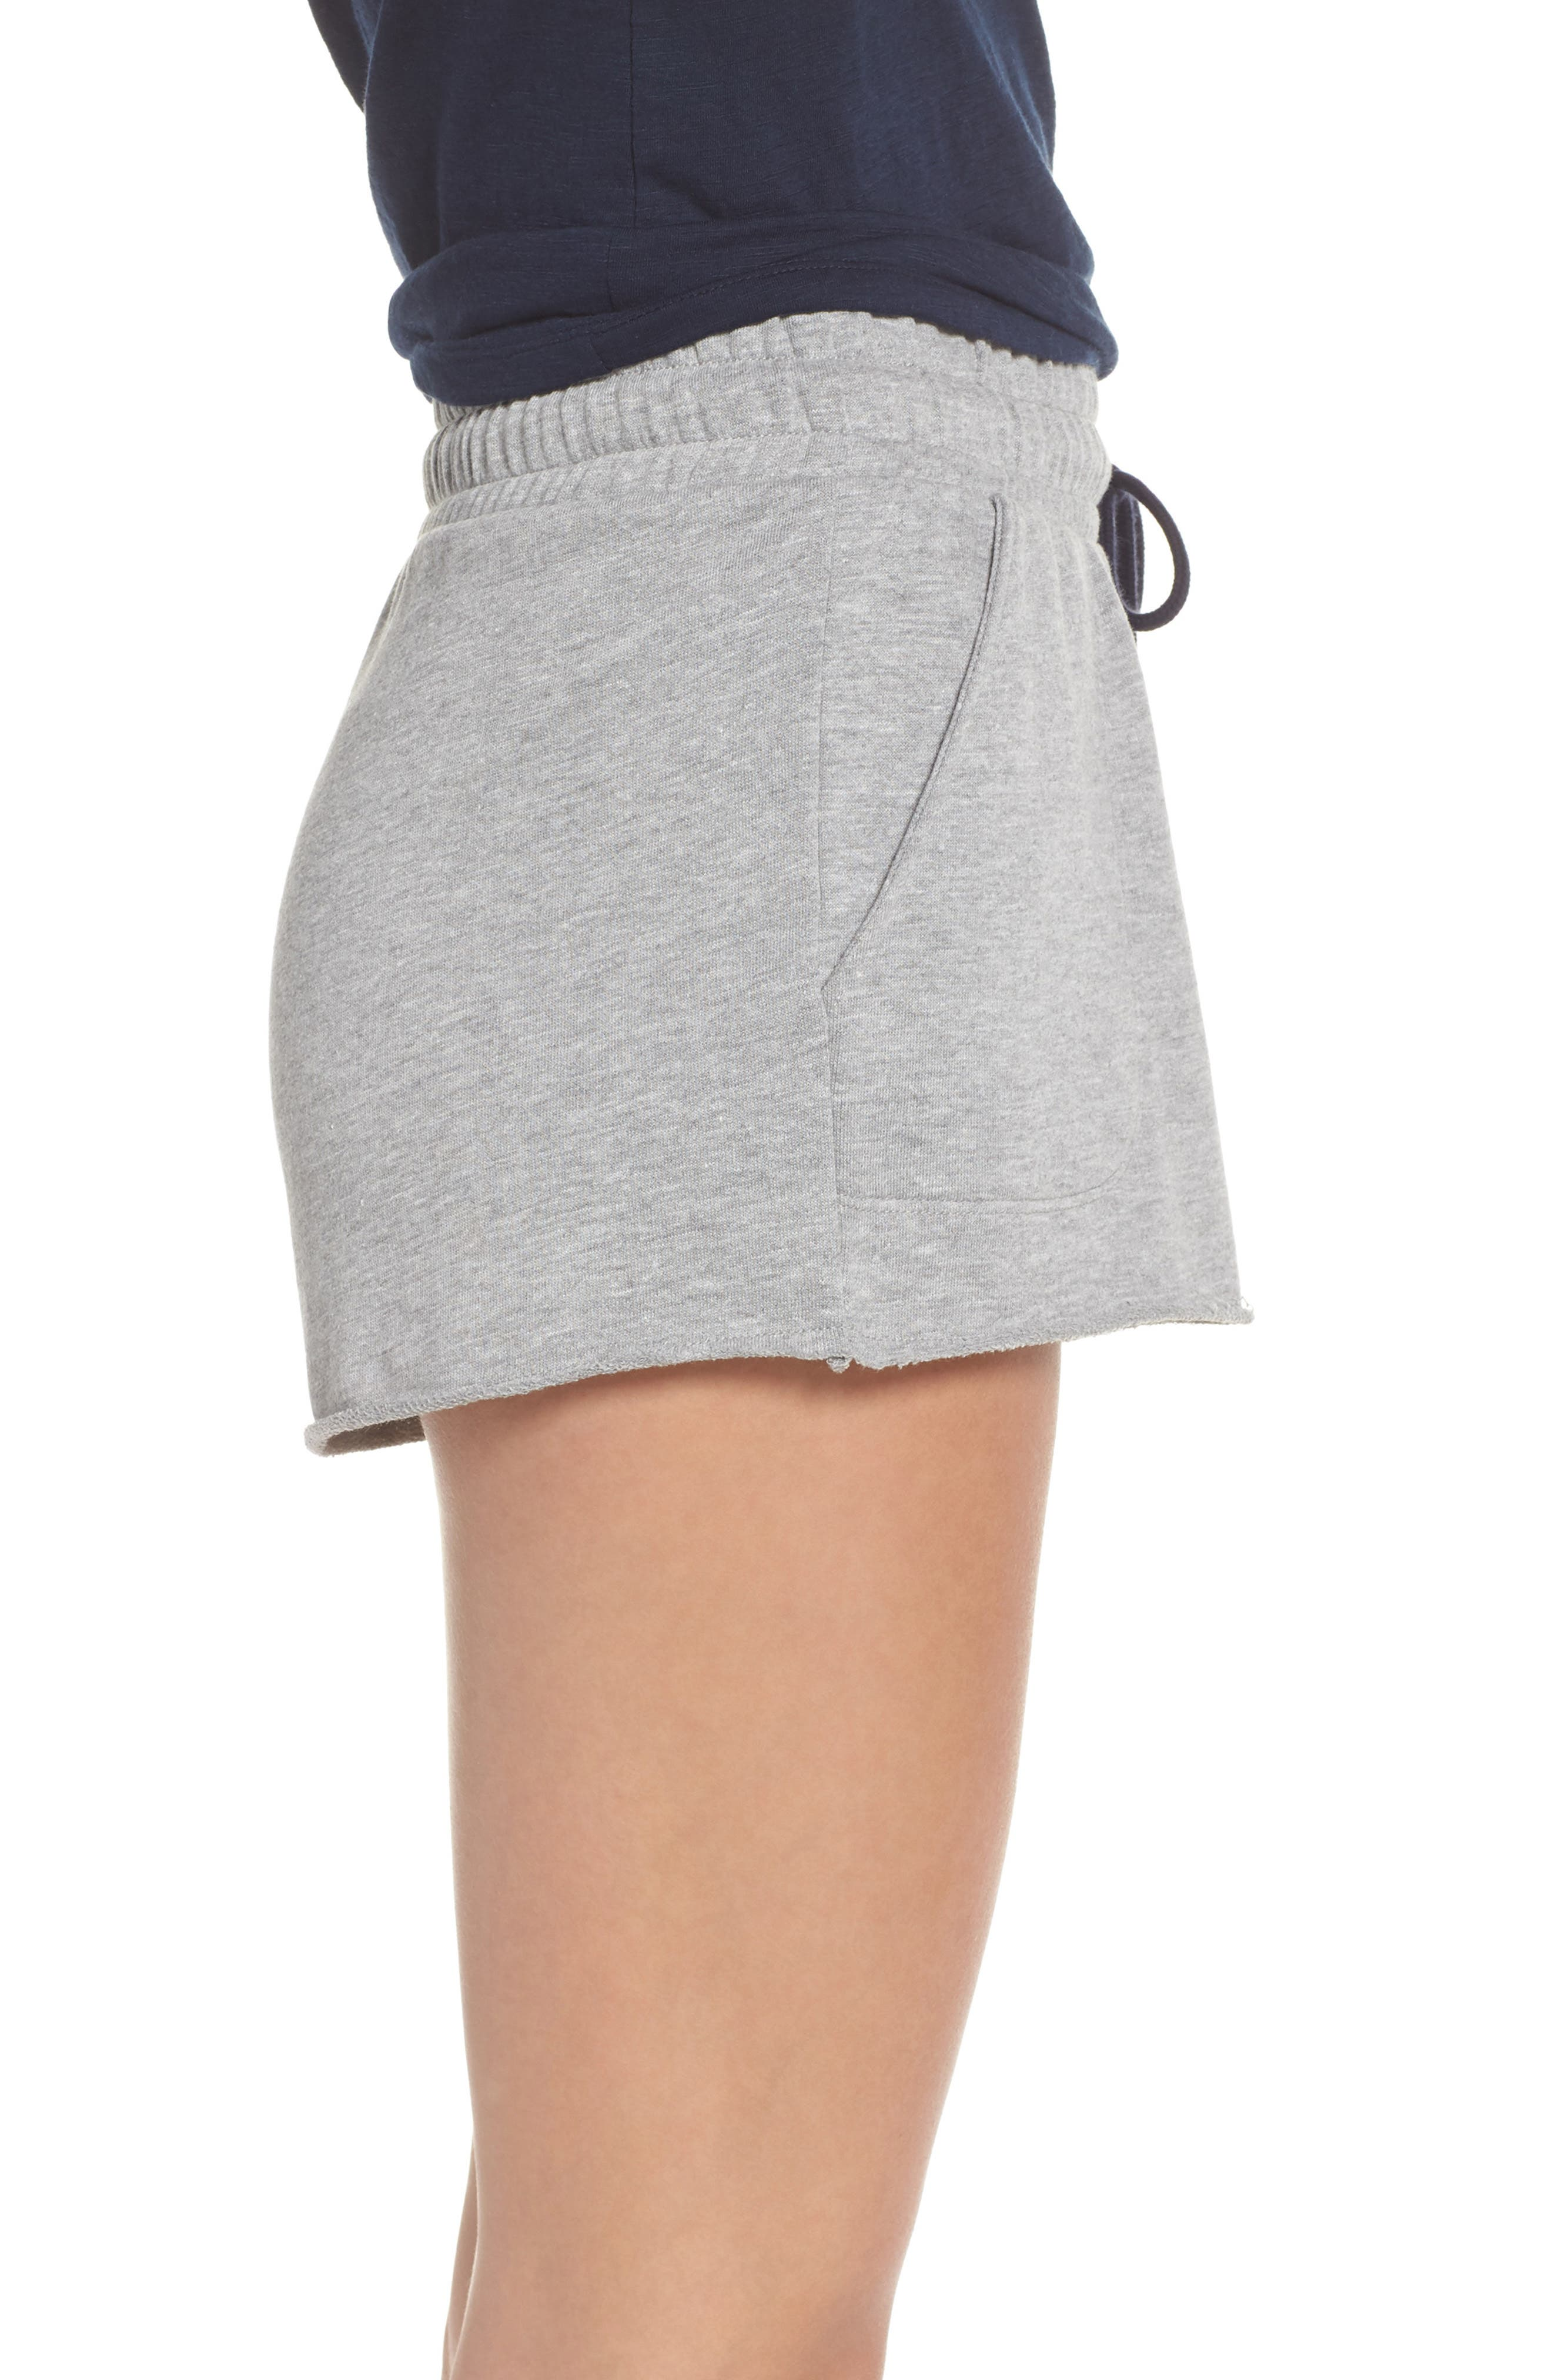 Raw Edge Pajama Shorts,                             Alternate thumbnail 3, color,                             020